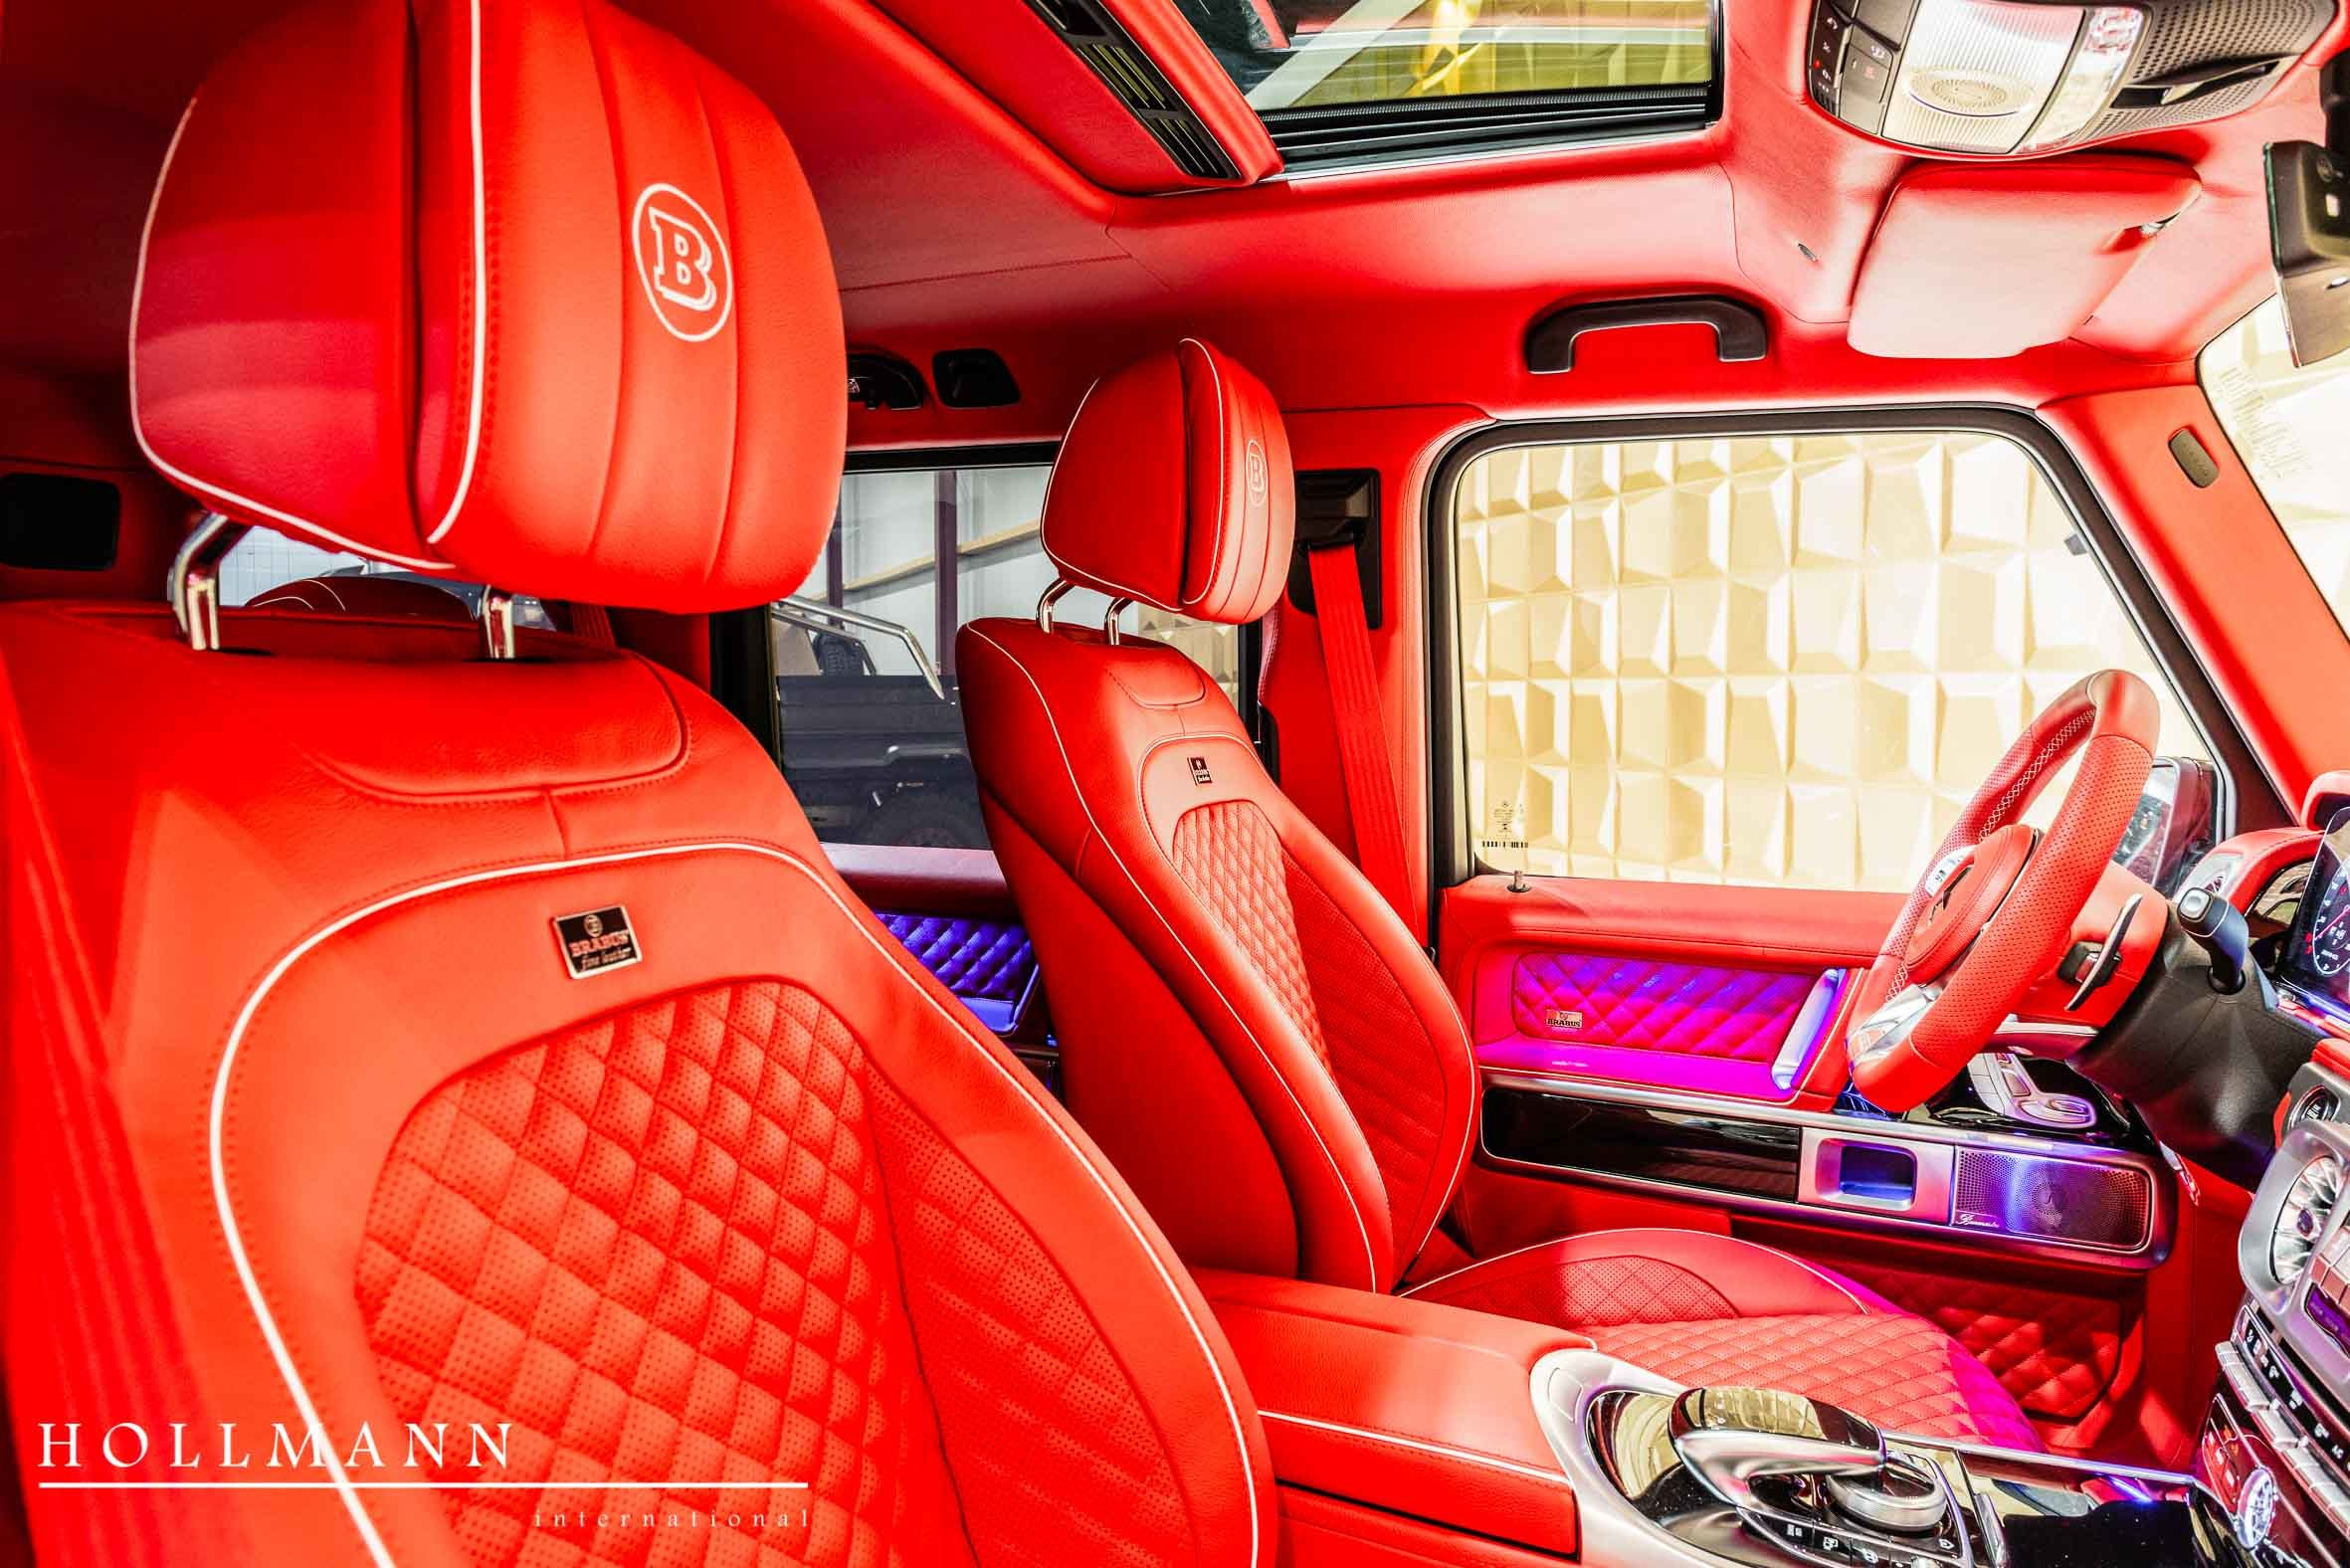 Mercedes G 63 Amg Brabus 800 Luxury Pulse Cars Germany For Sale On Luxurypulse